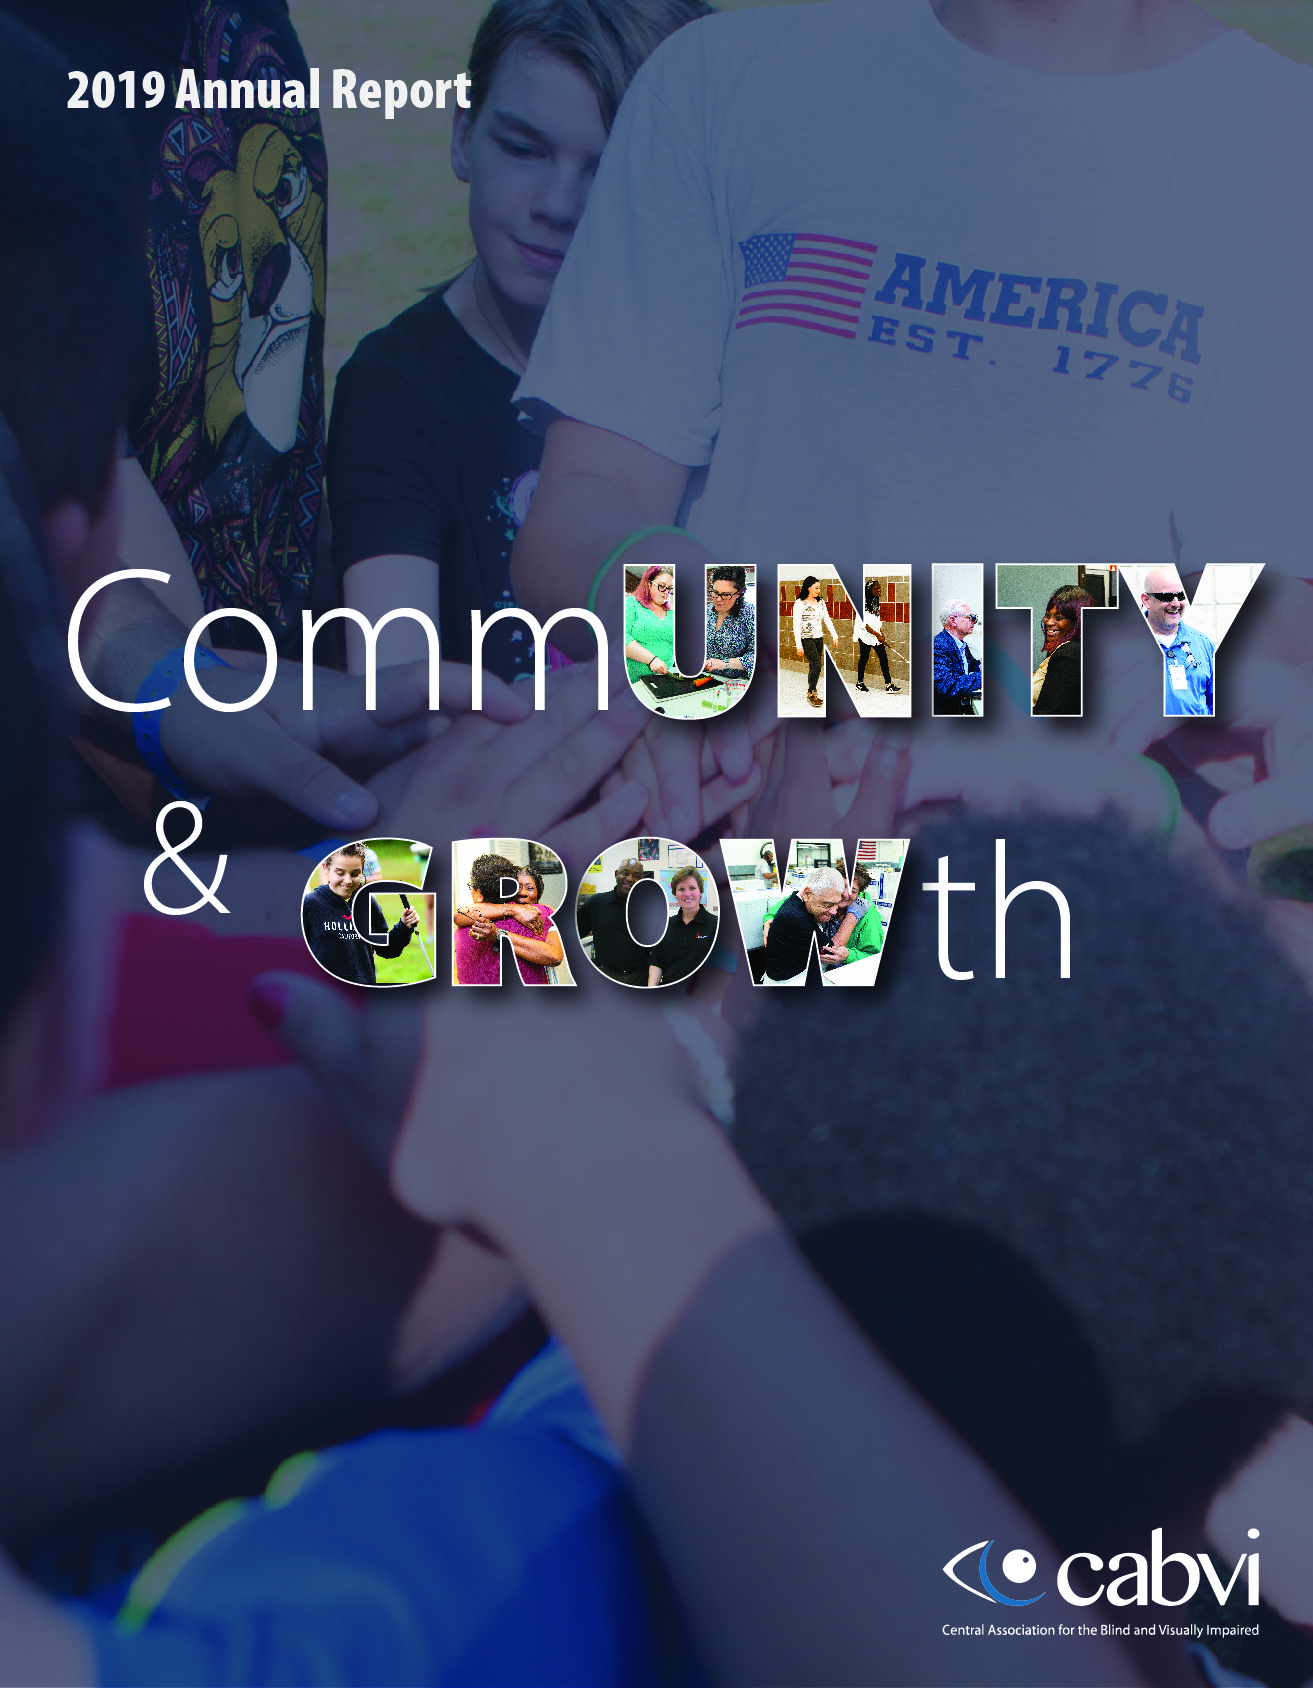 2019 Annual Report cover with the words Community and Growth, and a circle of hands